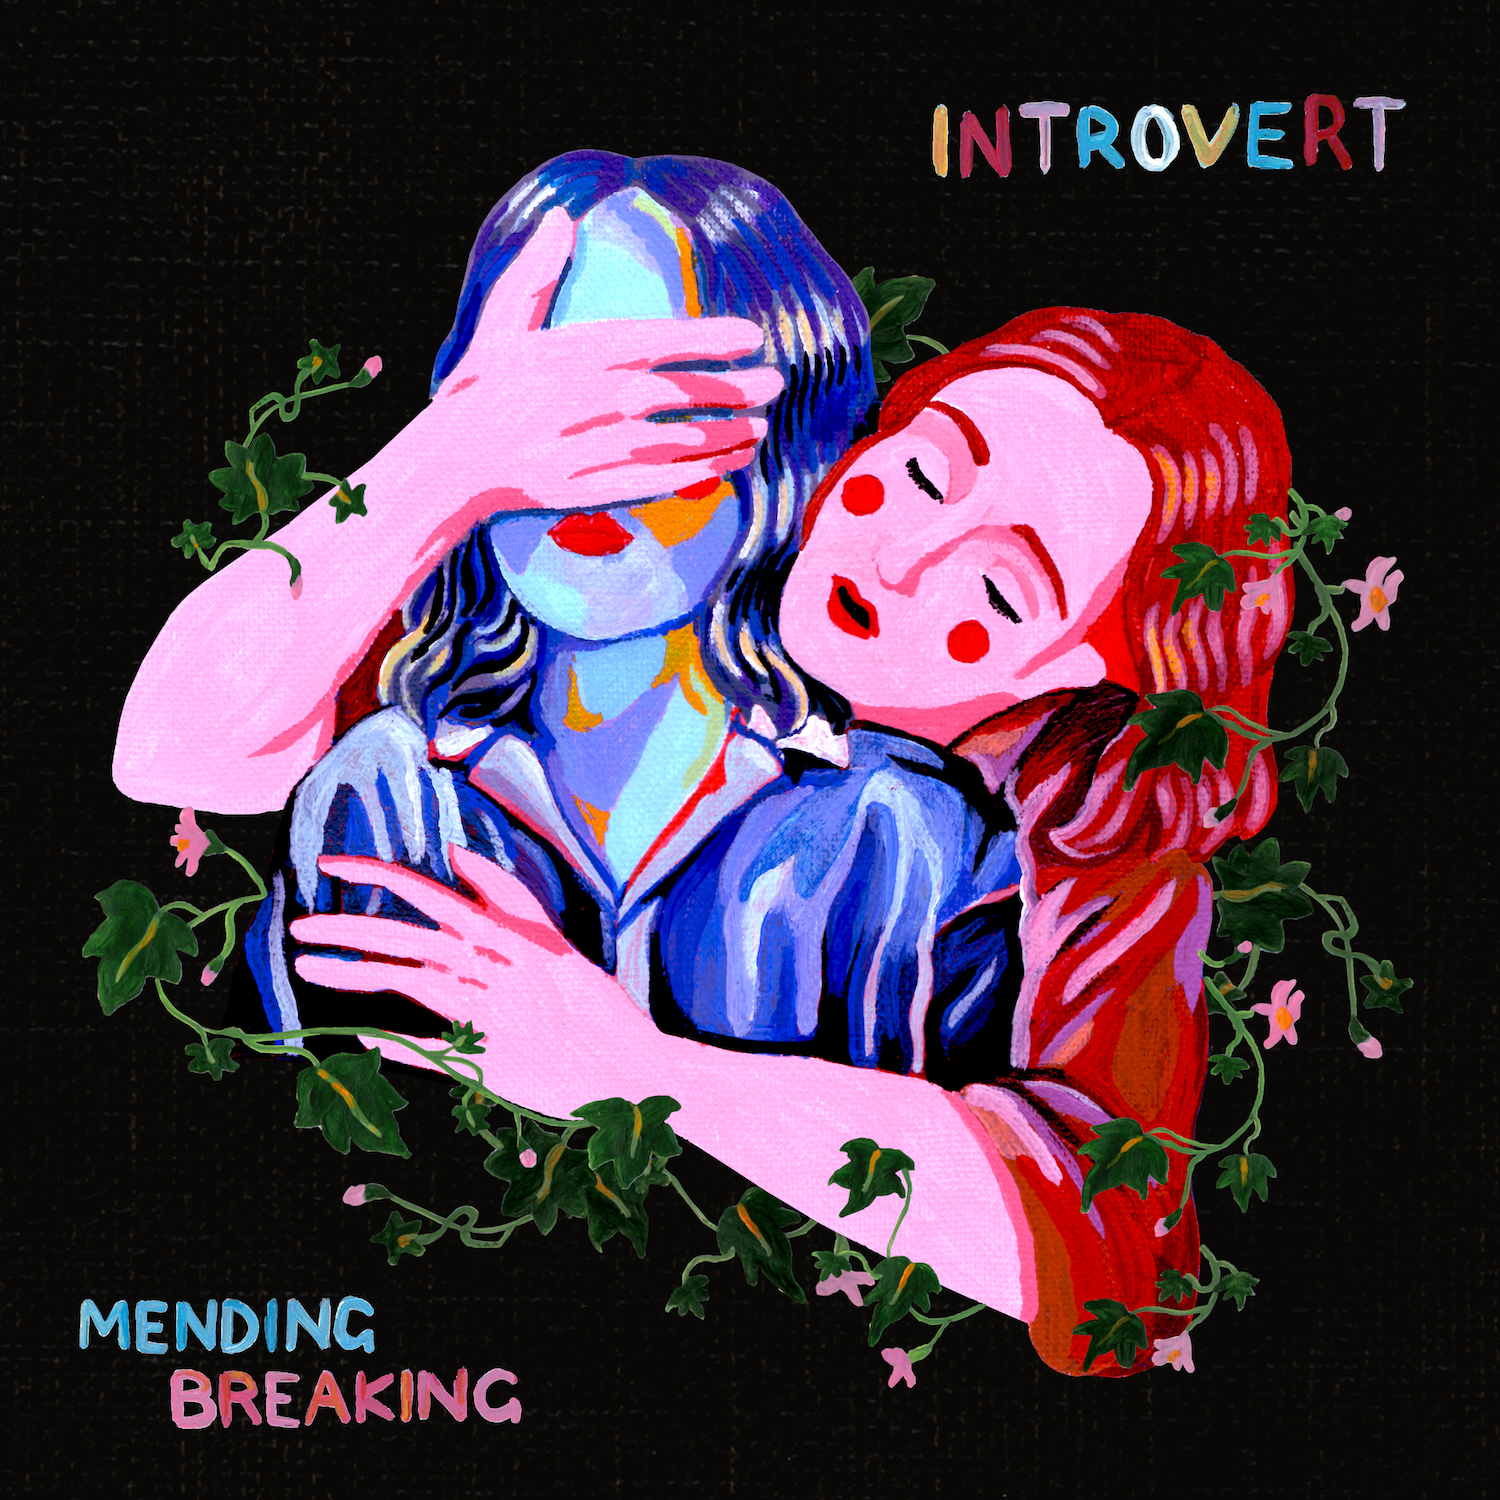 Introvert Mending Breaking artwork